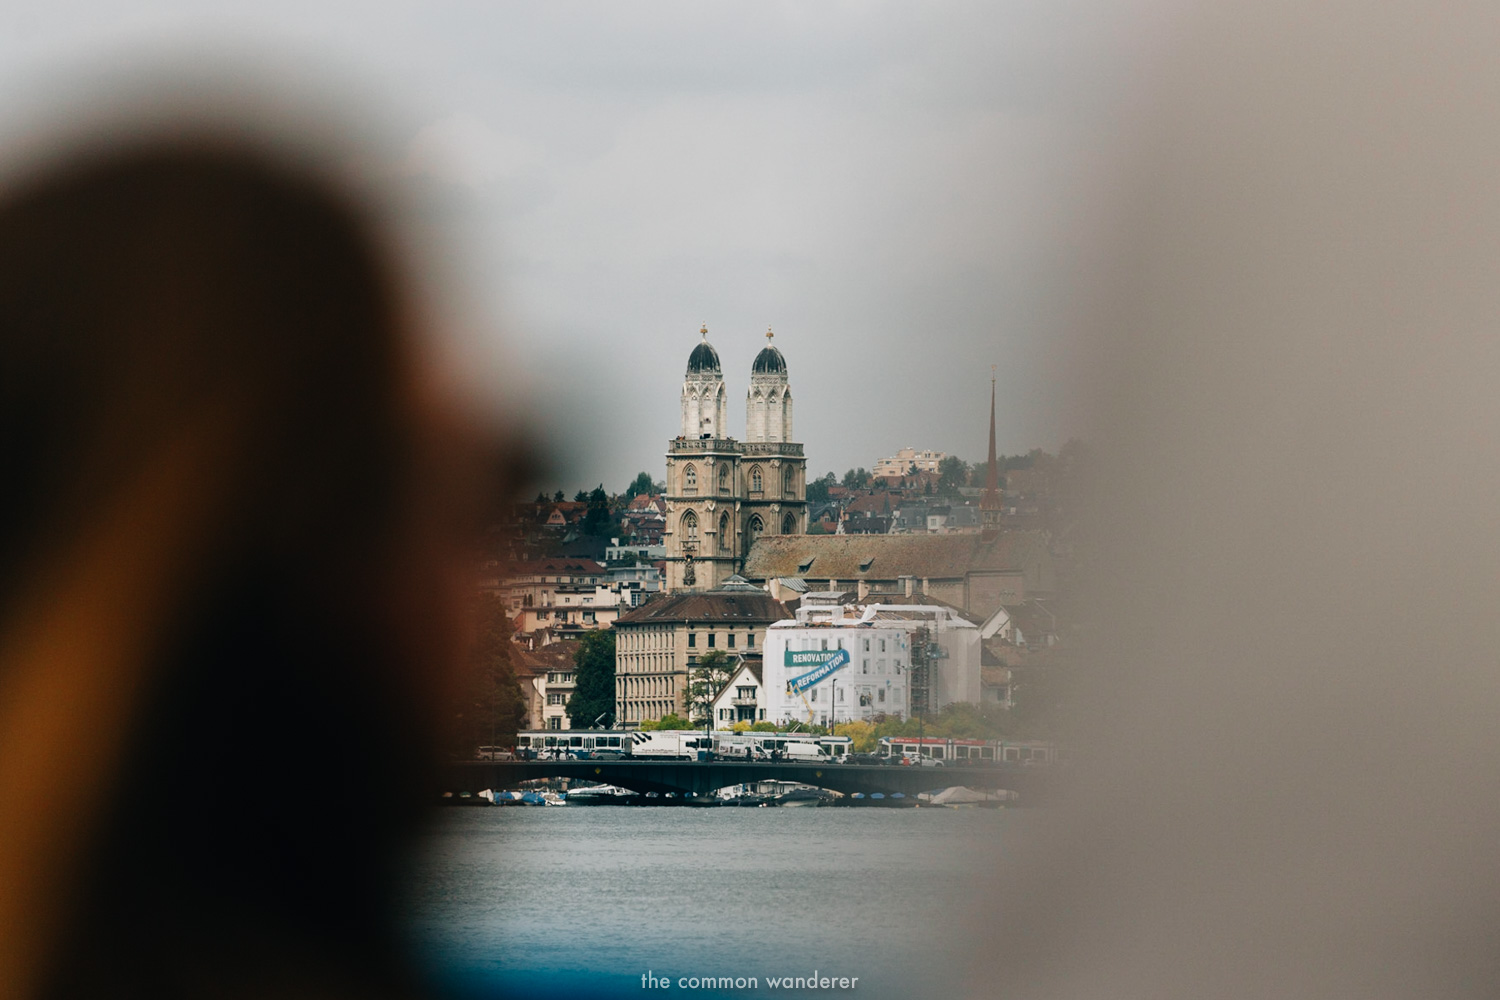 The Common Wanderer_- cruise on lake Zurich.jpg